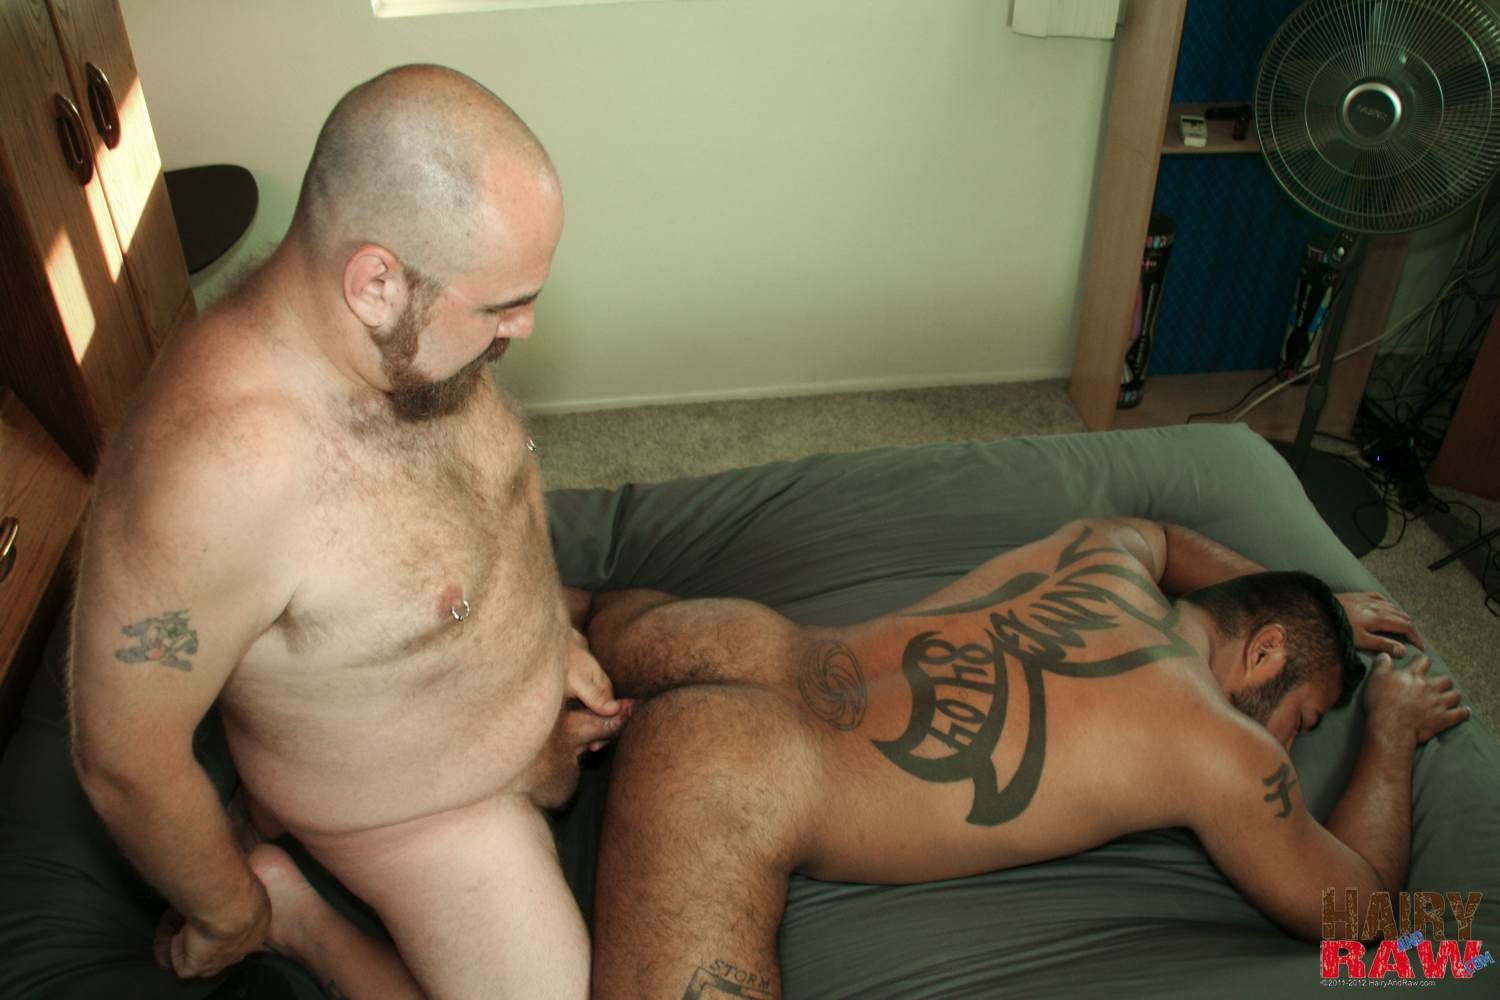 Hairy-and-Raw-DJ-Russo-and-Rico-Vega-Chubby-Bears-Barebacking-Amateur-Gay-Porn-10 Amateur Interracial Chubby Bears Barebacking Sex Pigs